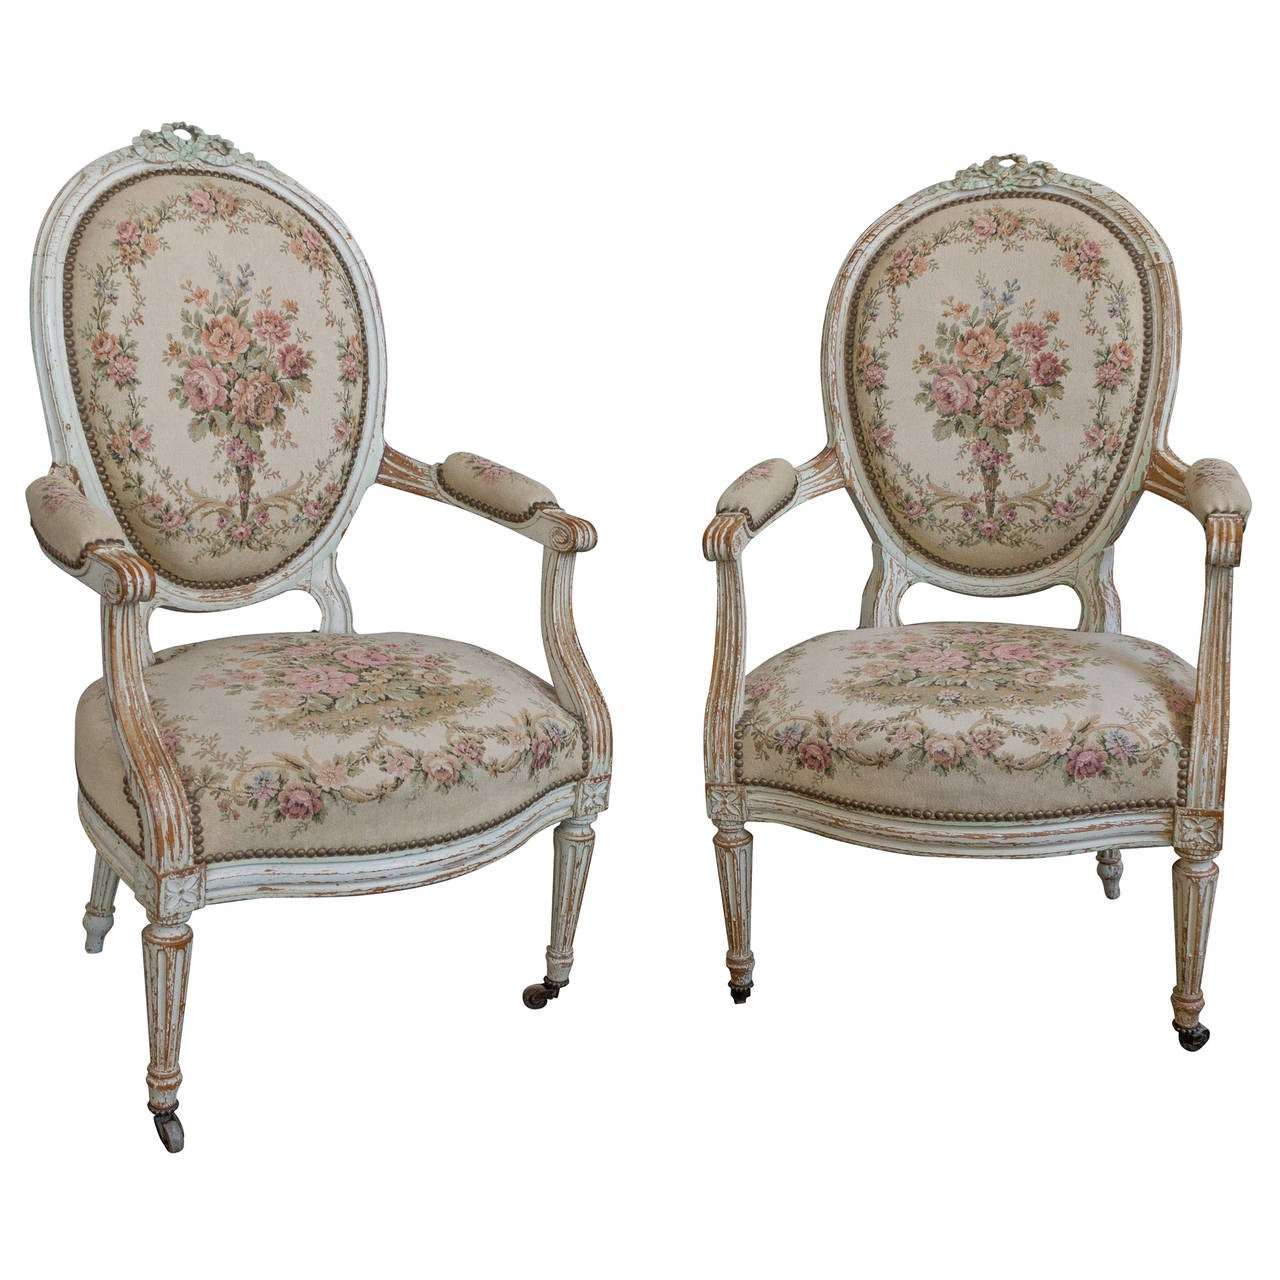 Pair of French 19th Century Louis XVI Style Armchairs in Petit Point Fabric  1Pair of French 19th Century Louis XVI Style Armchairs in Petit  . Louis Xvi Style Furniture For Sale. Home Design Ideas